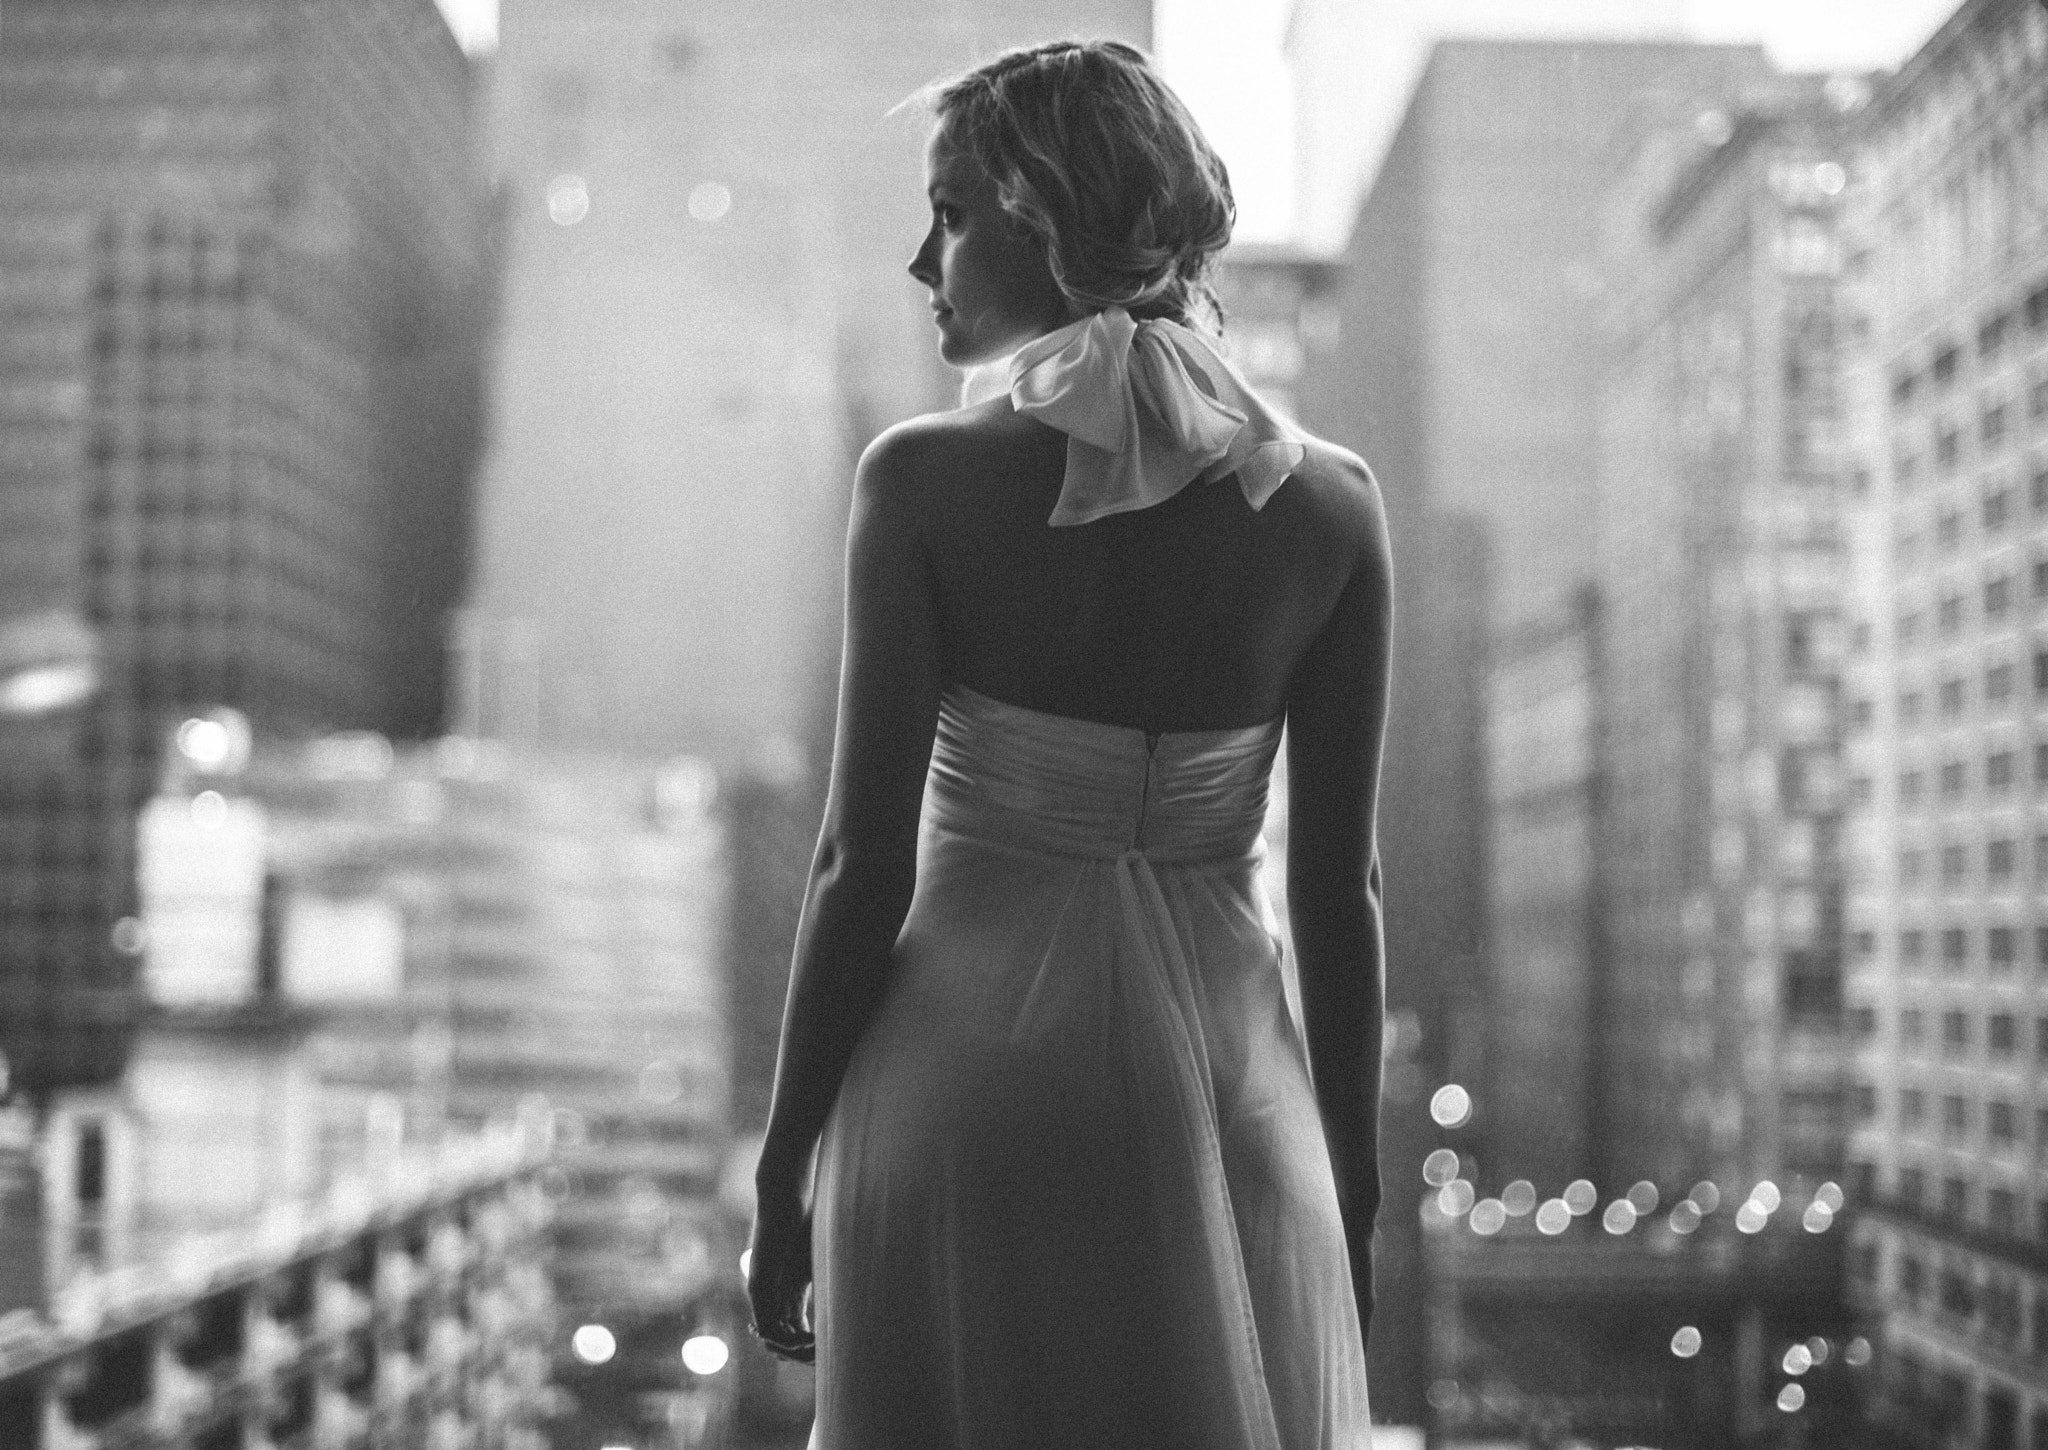 Photograph B/W Bride by Isi Akahome on 500px